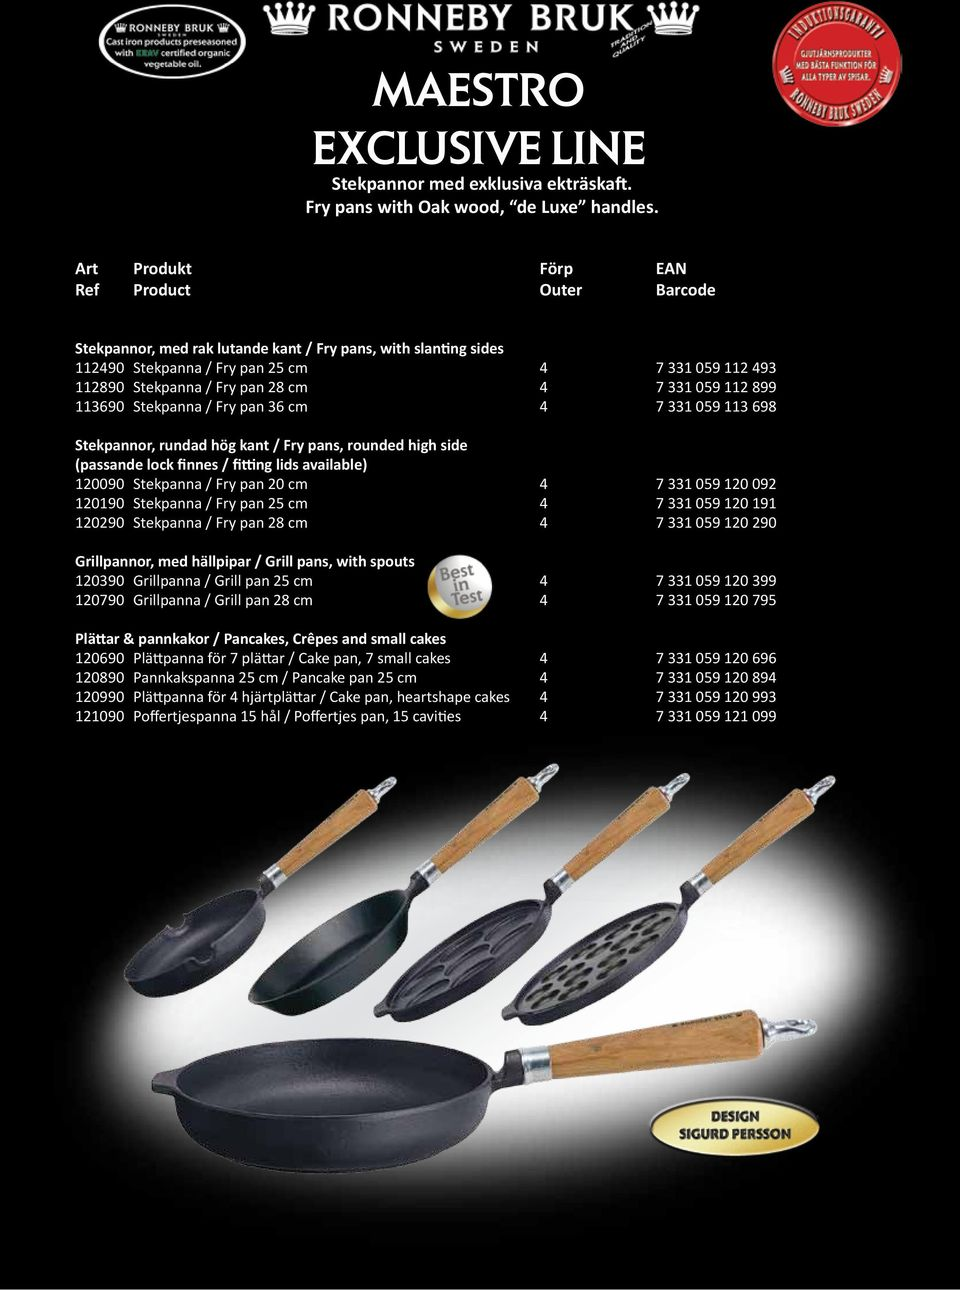 7 331 059 112 899 113690 Stekpanna / Fry pan 36 cm 4 7 331 059 113 698 Stekpannor, rundad hög kant / Fry pans, rounded high side (passande lock finnes / fitting lids available) 120090 Stekpanna / Fry